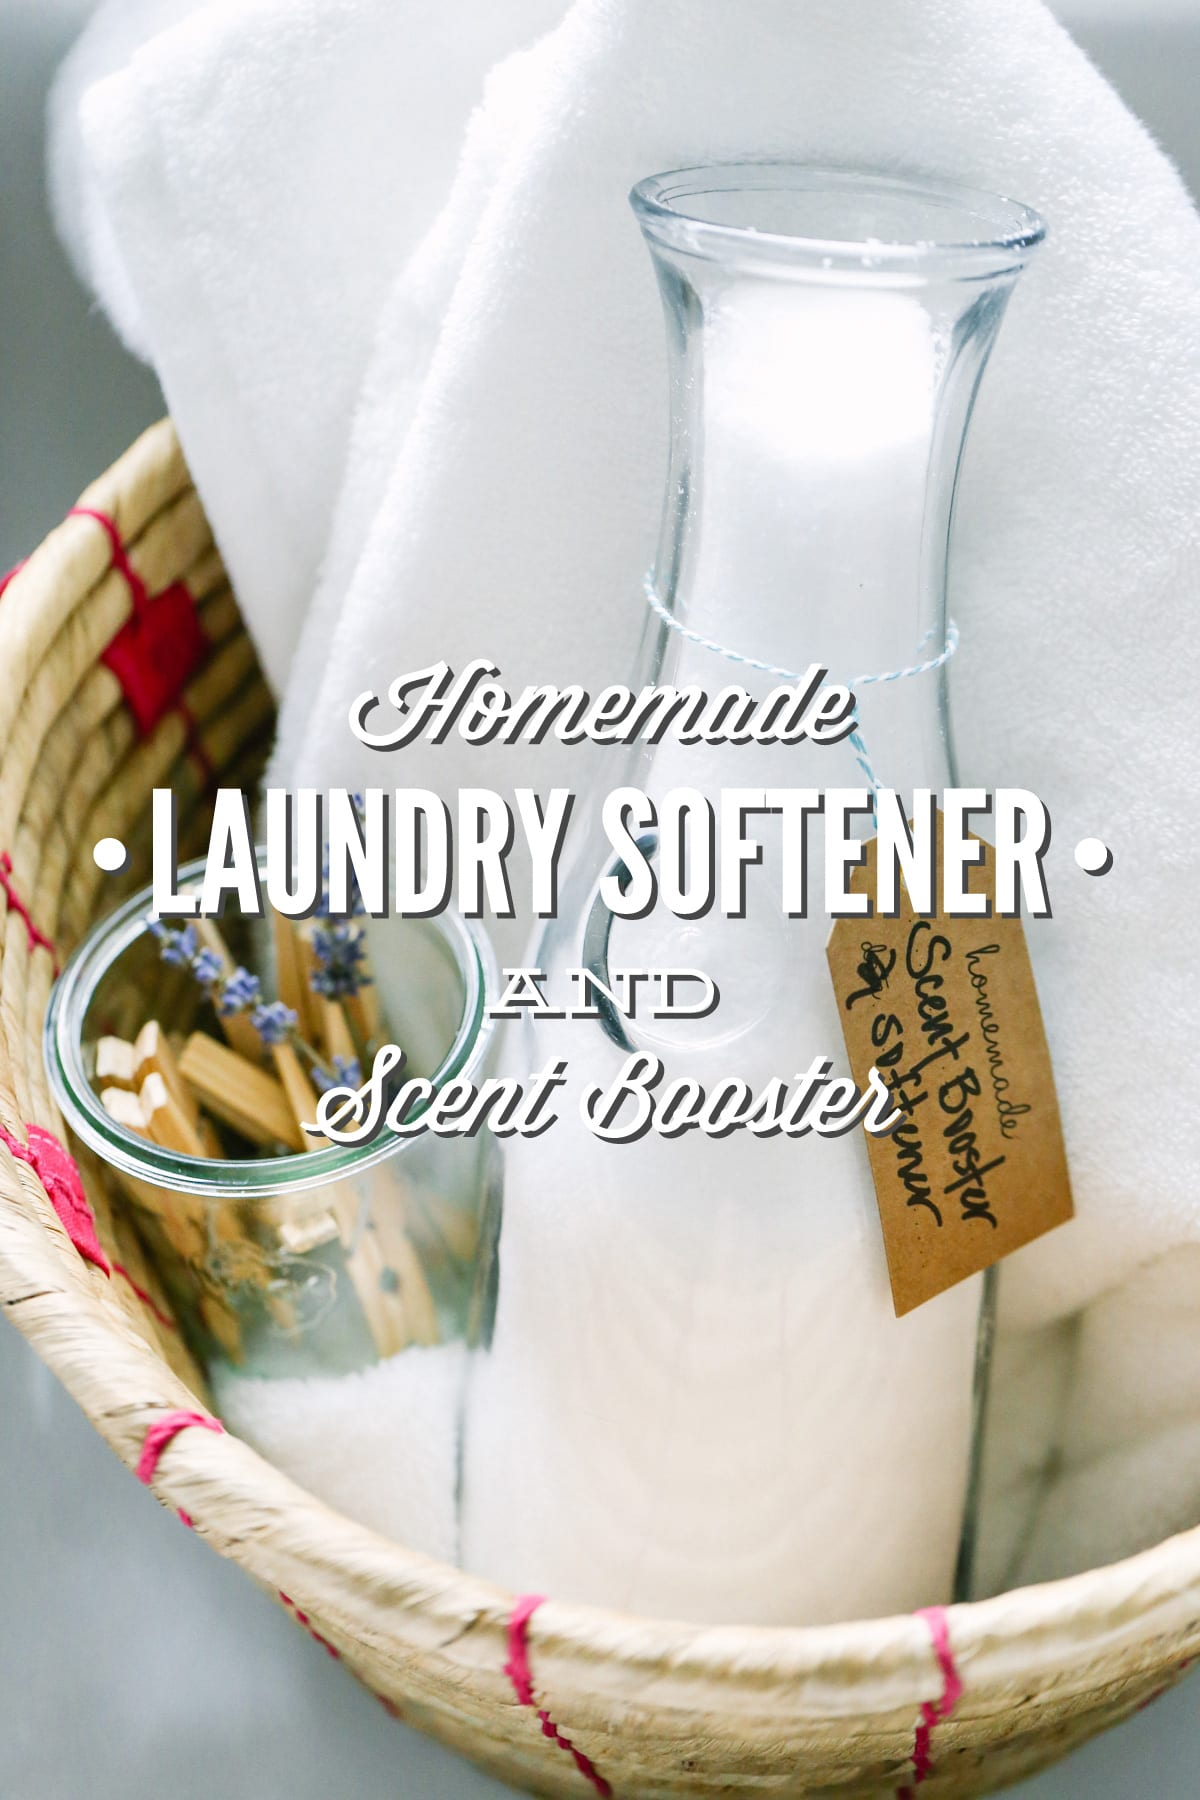 A two-ingredient, homemade fabric softener and scent booster. This stuff is super